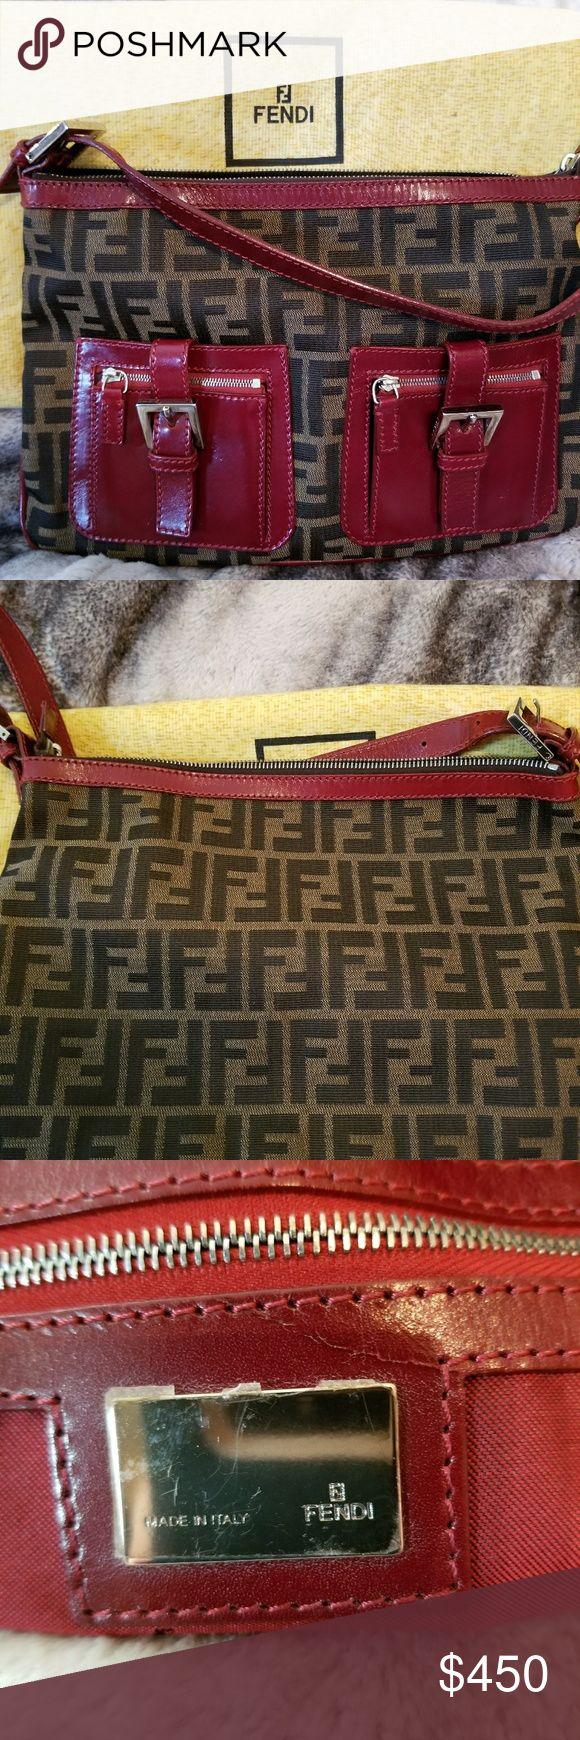 PRICE REDUCED**Fendi Zucca Logo Handbag 100% Authentic Fendi bag. Excellent condition, no visible signs of wear. Hard-to-find style. Dust cover included. Great bag! Fendi Bags